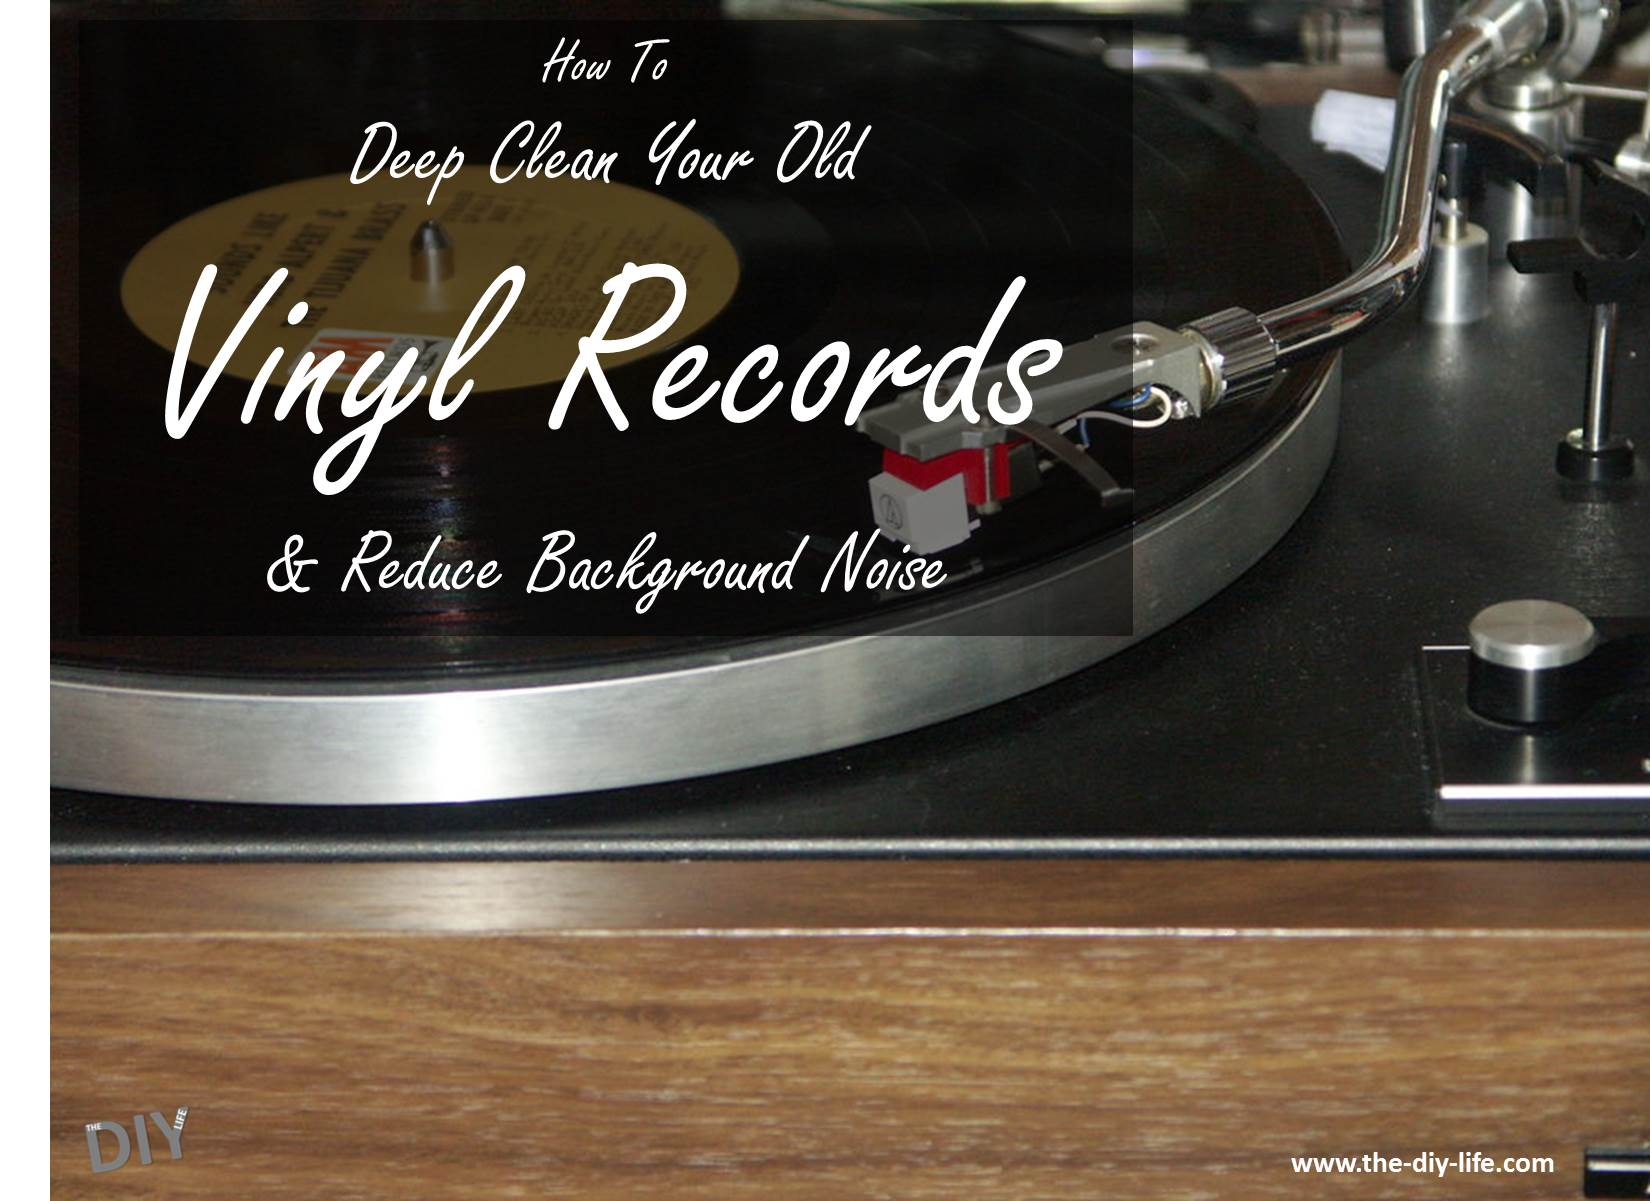 How To Deep Clean Your Old Vinyl Records - Reduce Background Noise